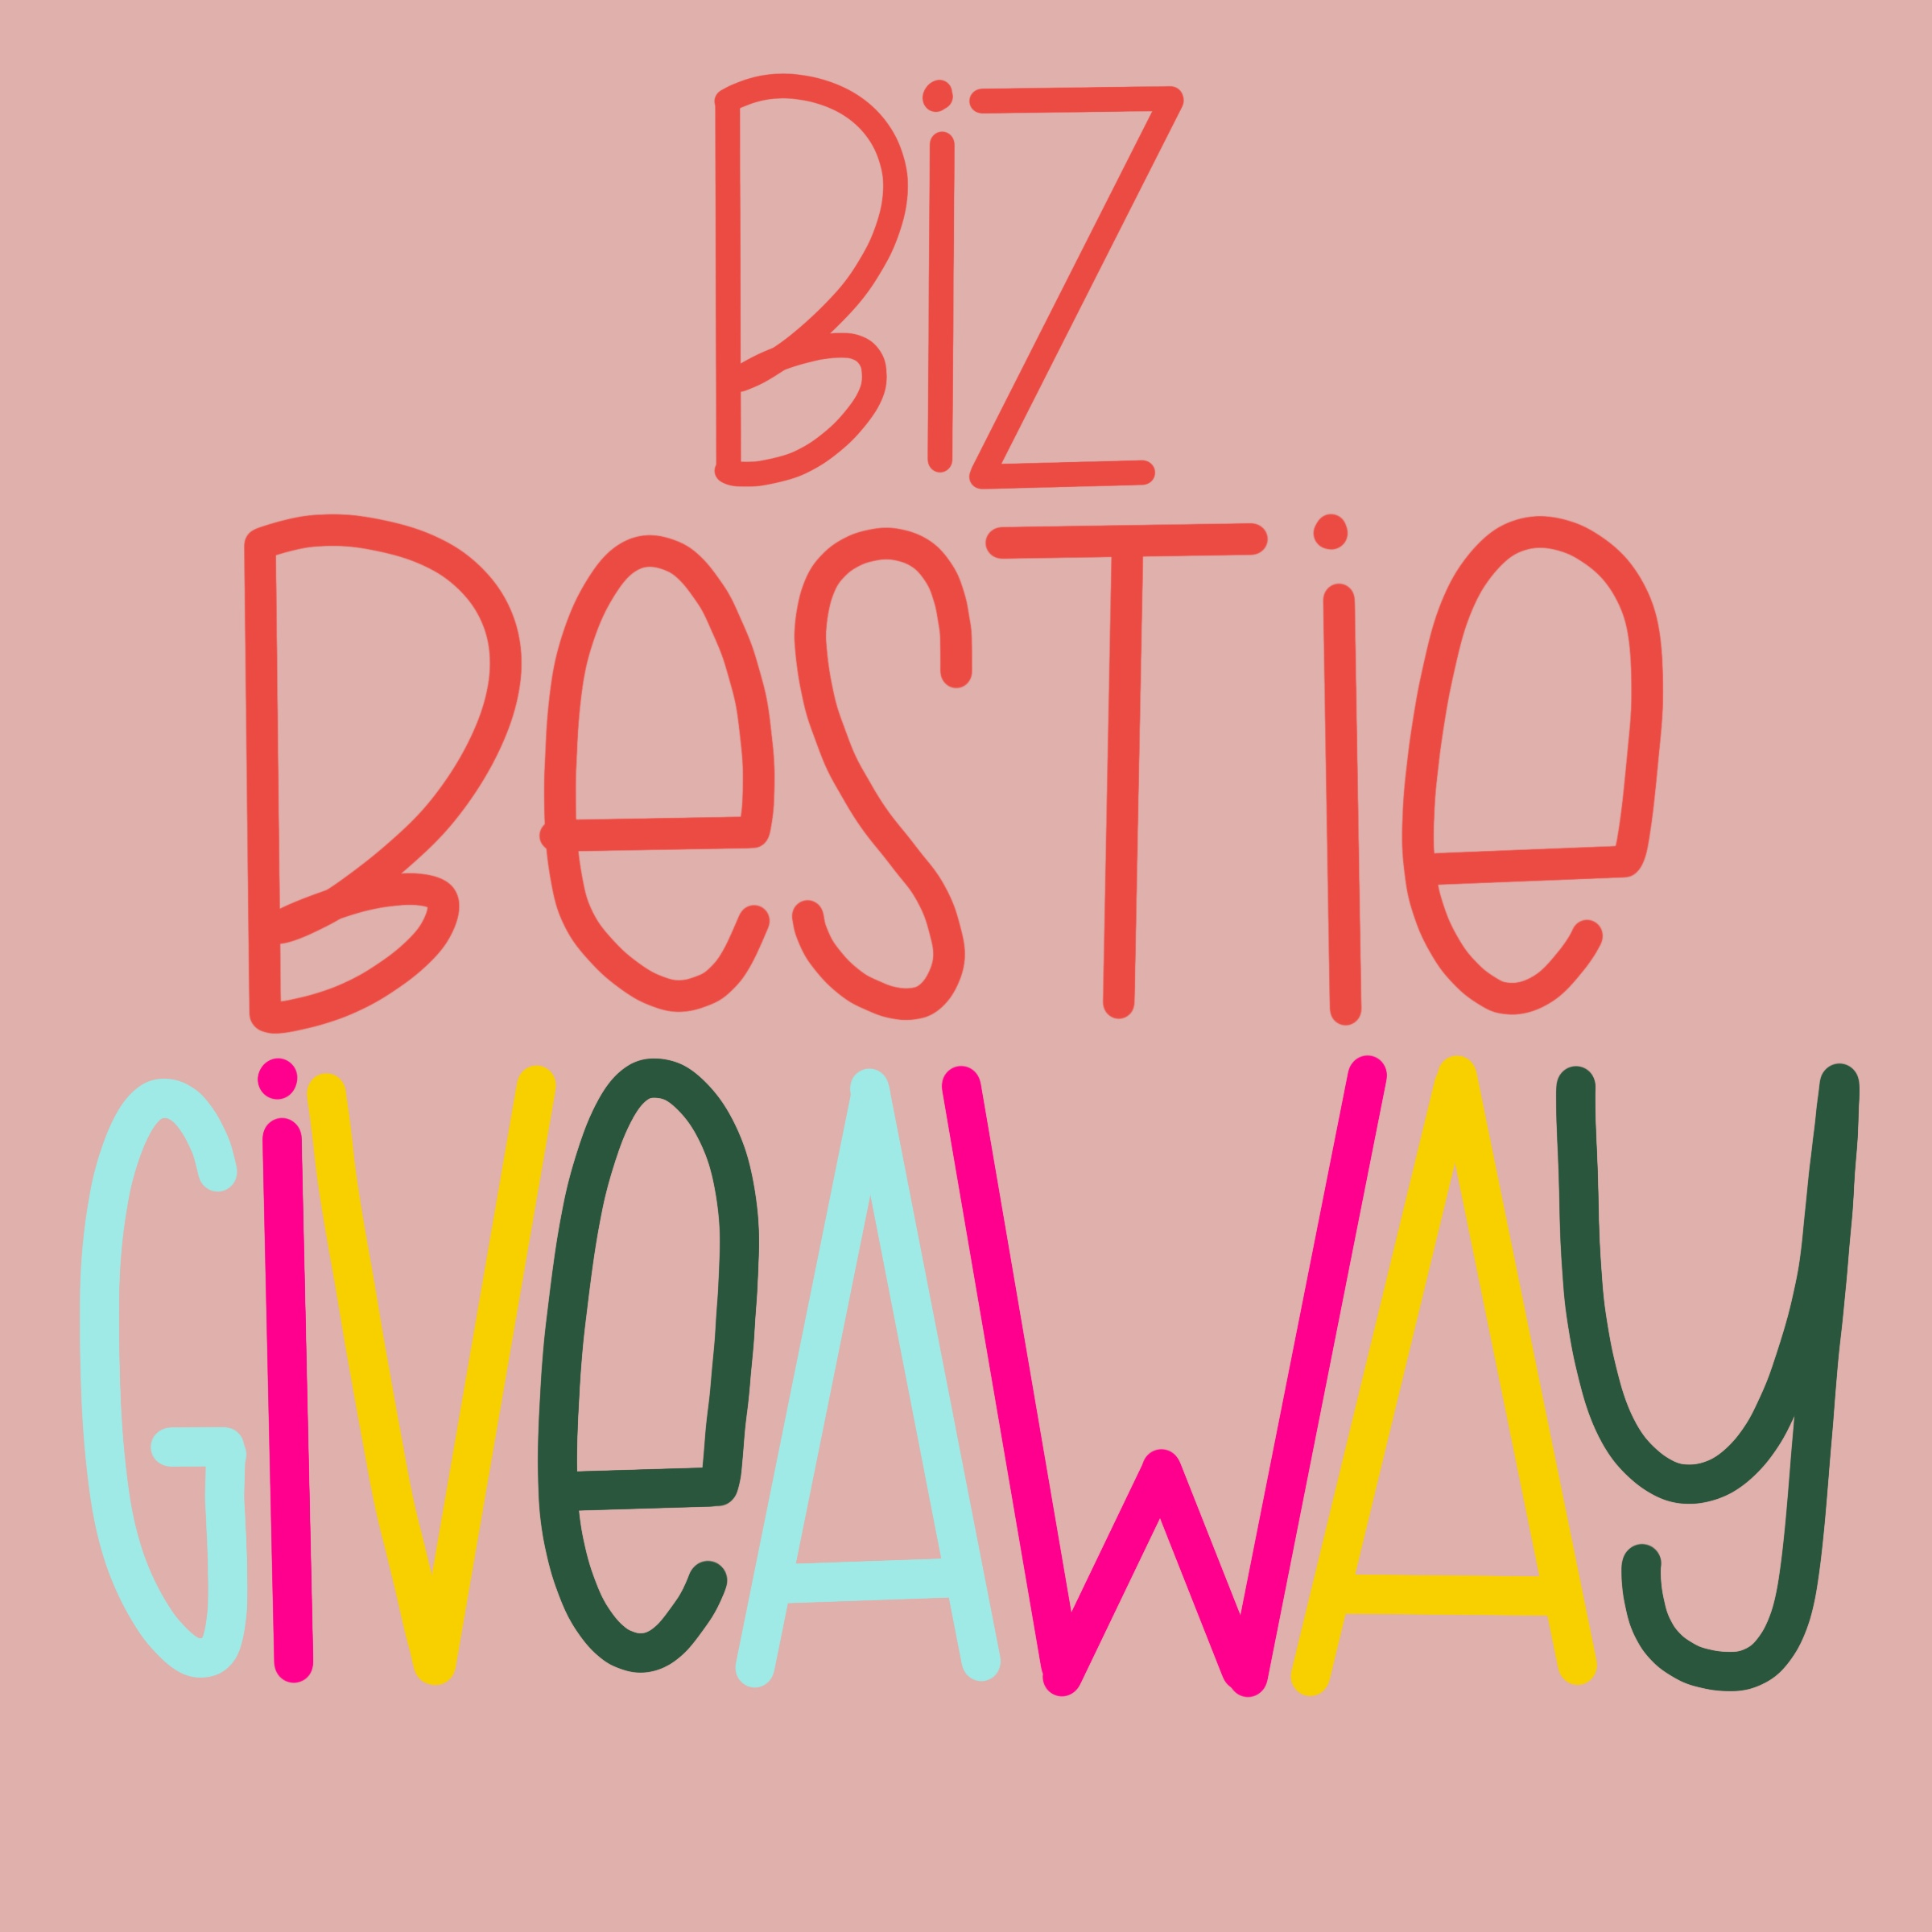 etsy-fees-squarespace-e-commerce-website-giveaway